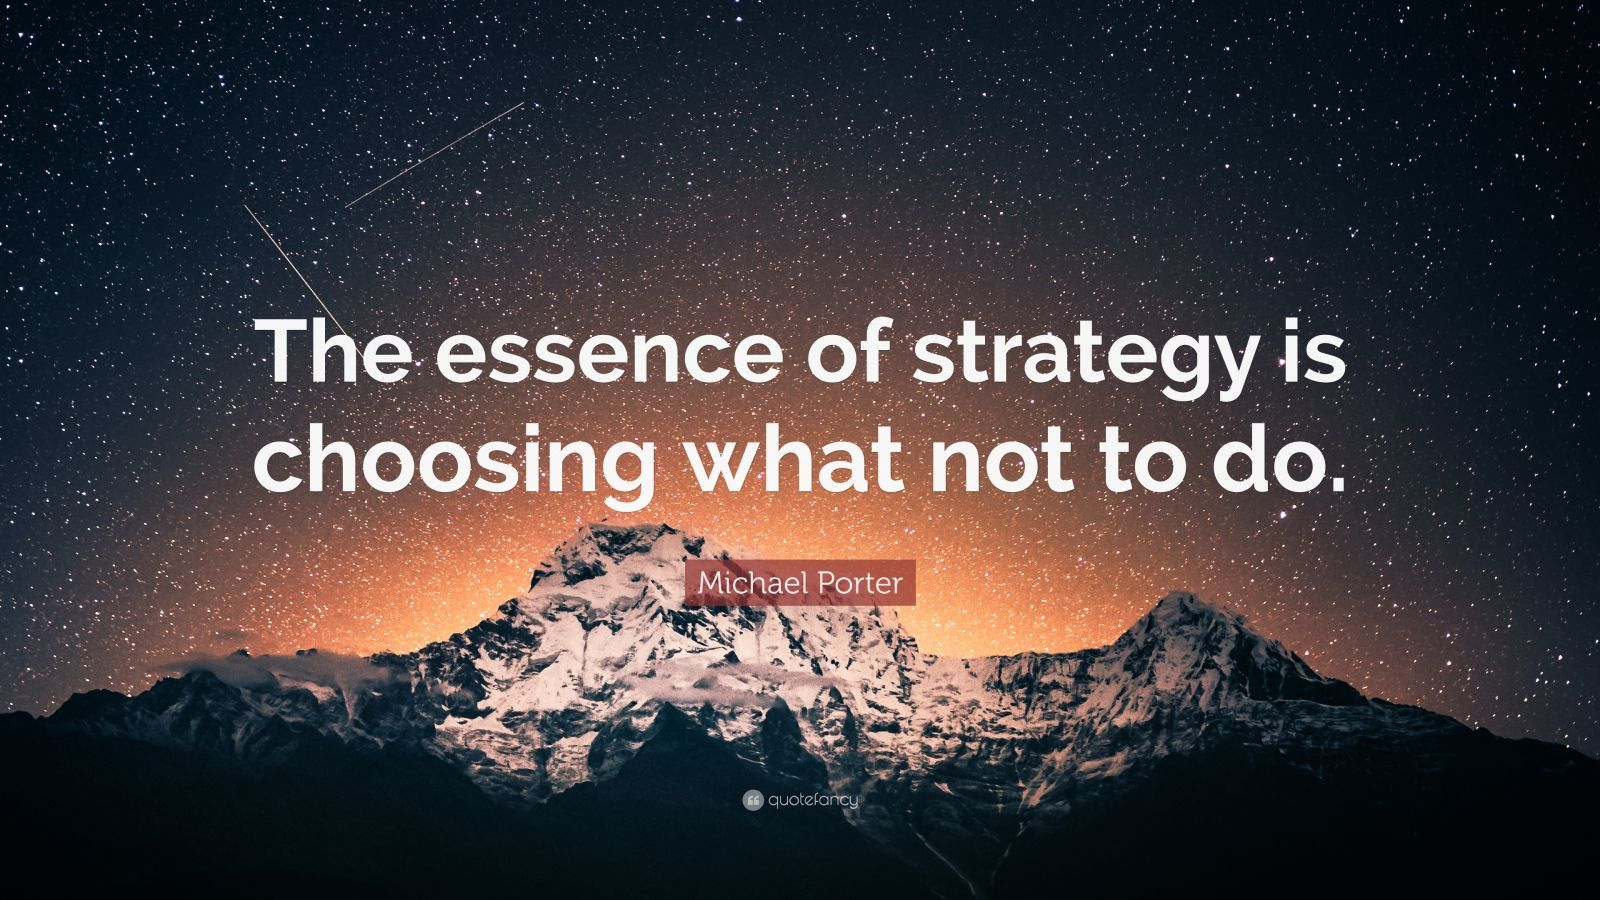 Steve Jobs Wallpaper Quotes Michael Porter Quote The Essence Of Strategy Is Choosing